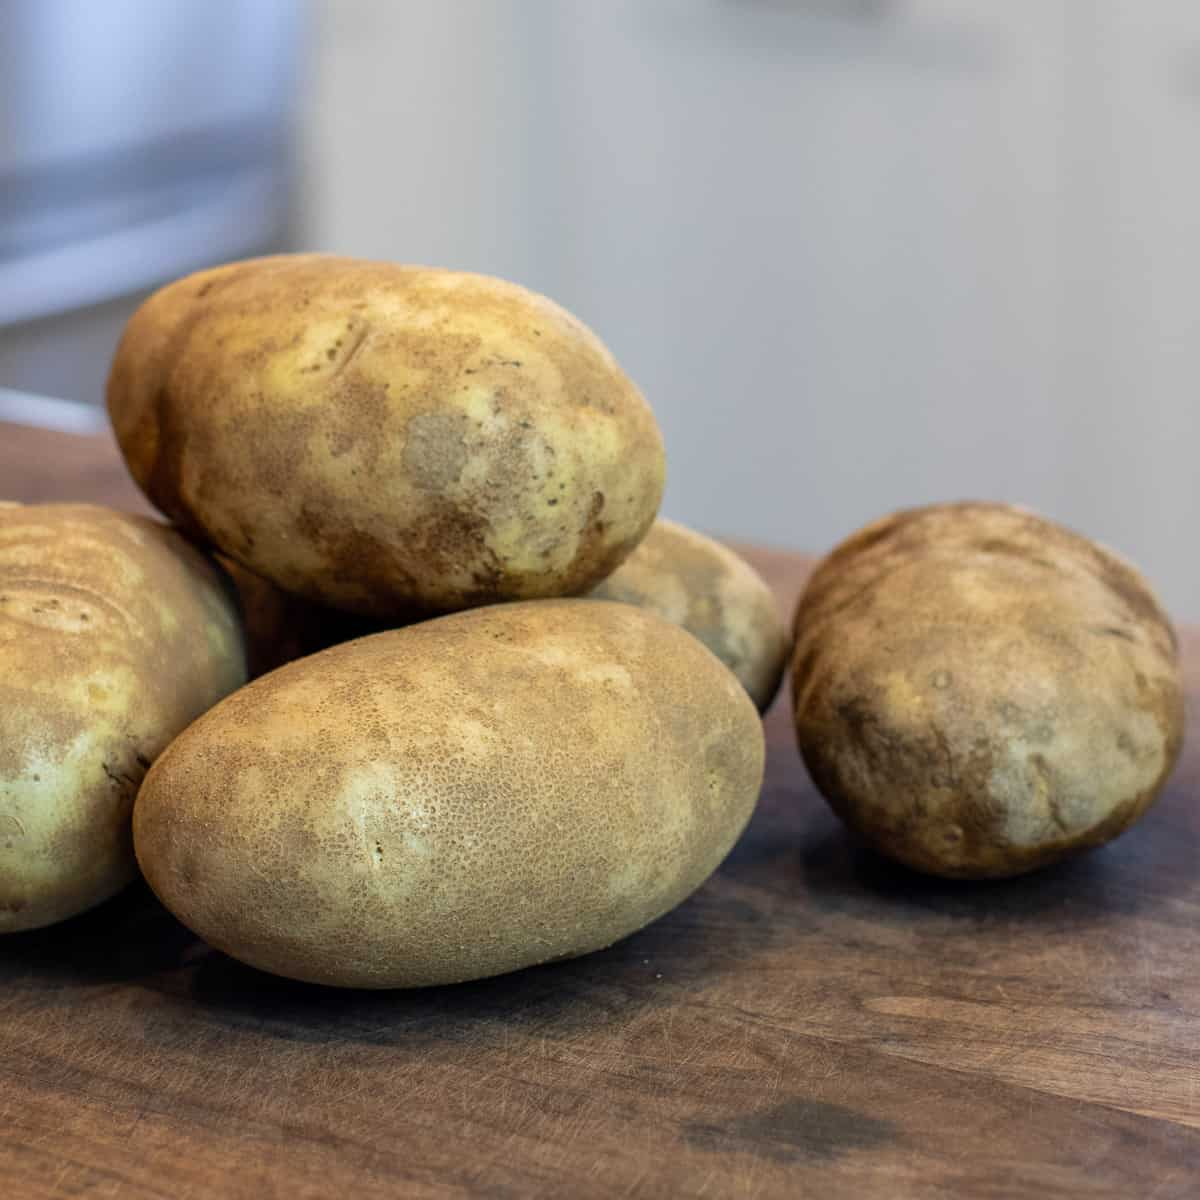 A pile of russet potatoes.